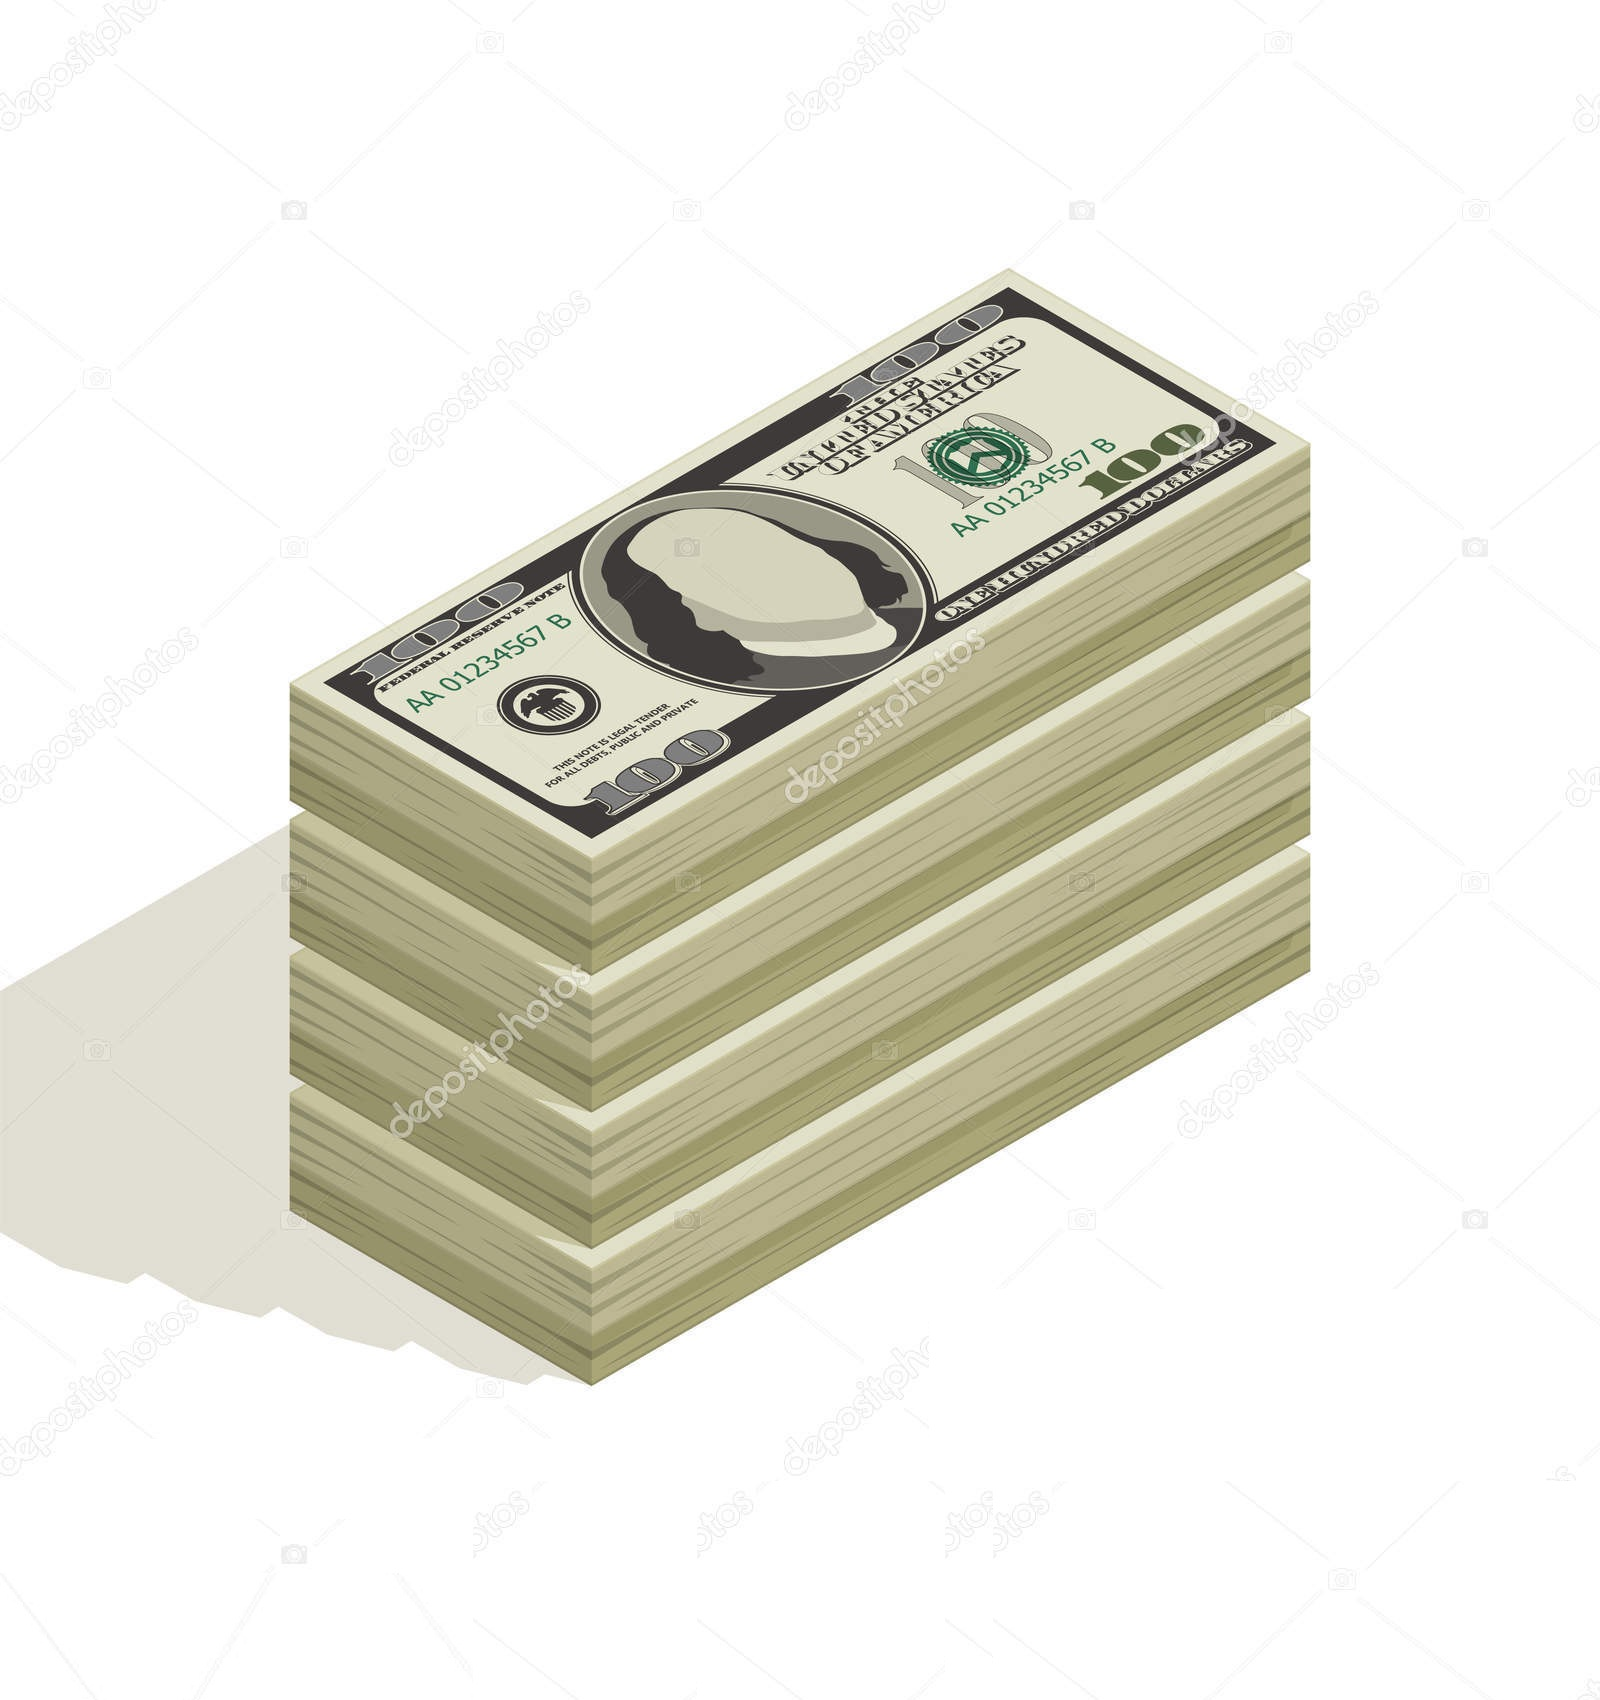 Apply for an easy loan now and solve your financial problems.